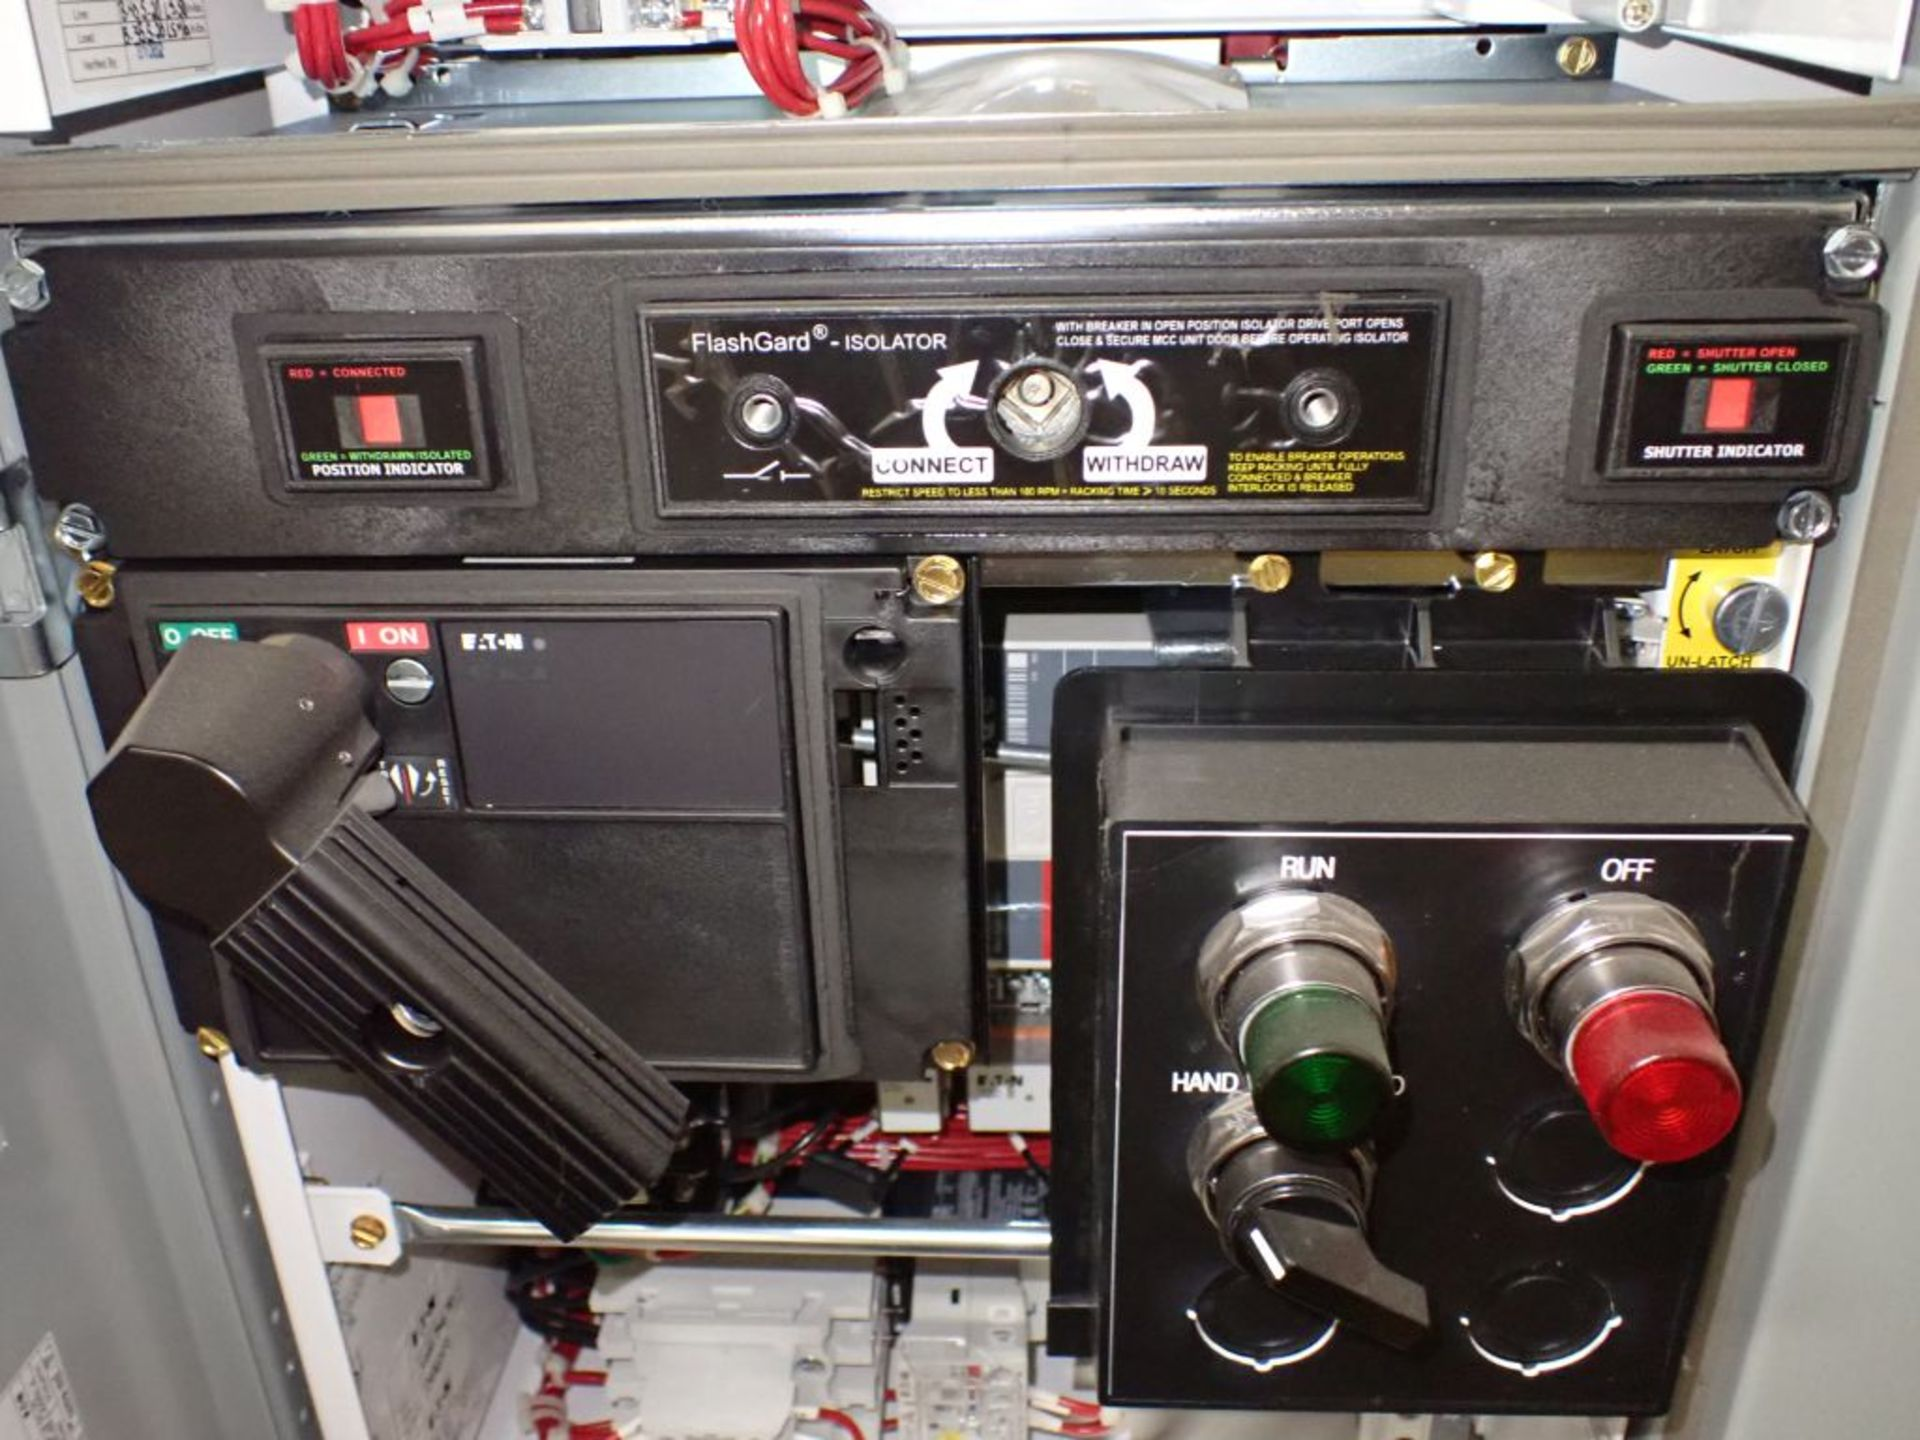 Eaton Freedom 2100 Series Motor Control Center | (11) F206-30A-10HP; (5) F206-15A-10HP; (1) SVX900- - Image 77 of 102